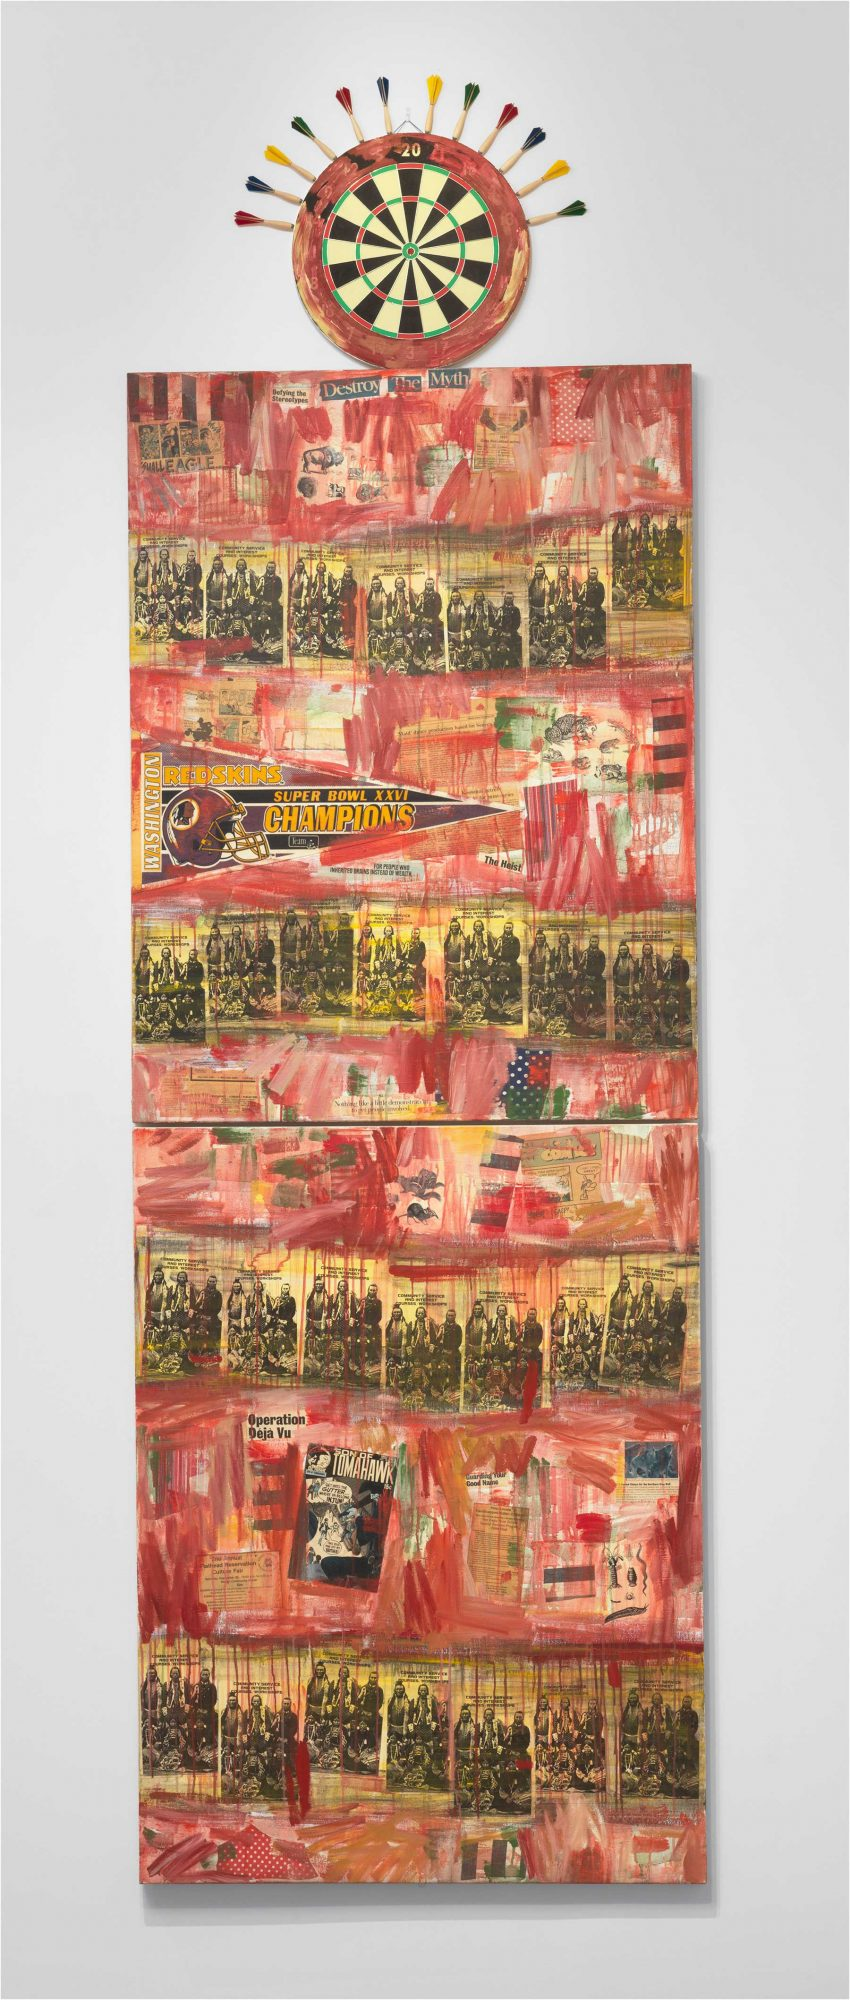 Jaune Quick-to-See Smith, I See Red: Target, 1992, mixed media on canvas overall (three parts): 340.4 x 106.7 cm (134 x 42 in.)